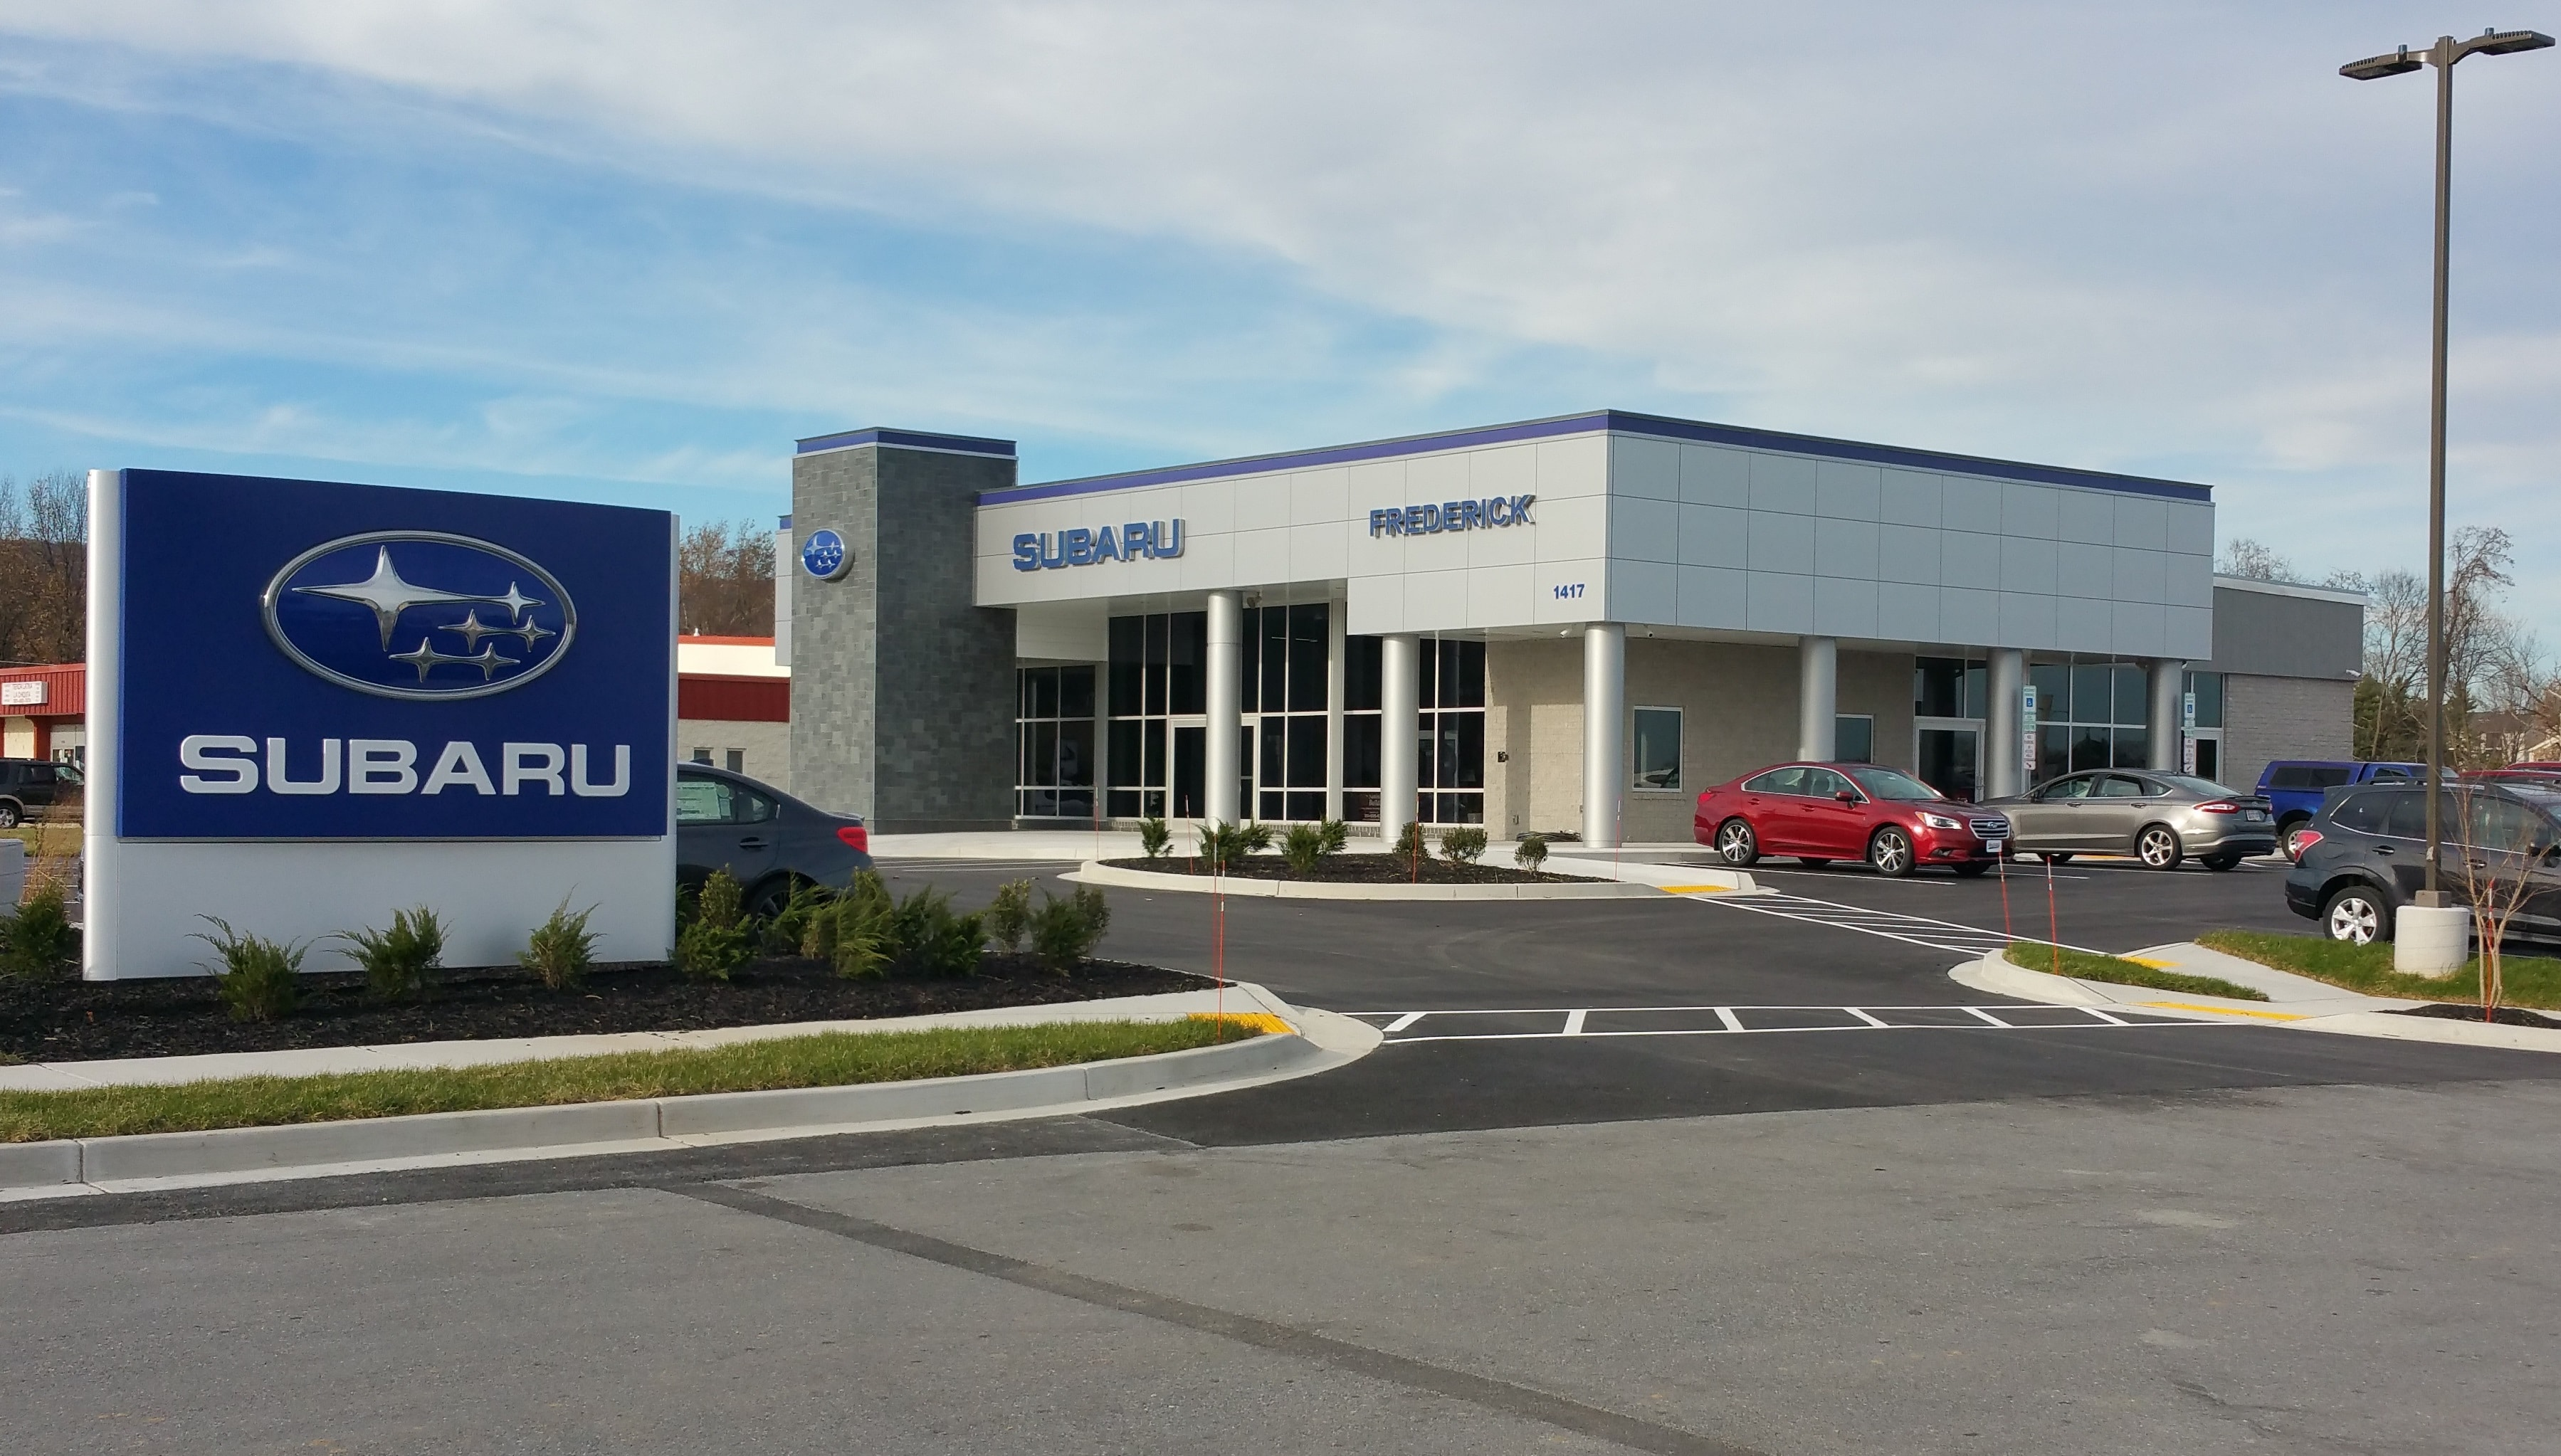 frederick subaru in maryland new used car dealer near hagerstown gaithersburg leesburg va. Black Bedroom Furniture Sets. Home Design Ideas